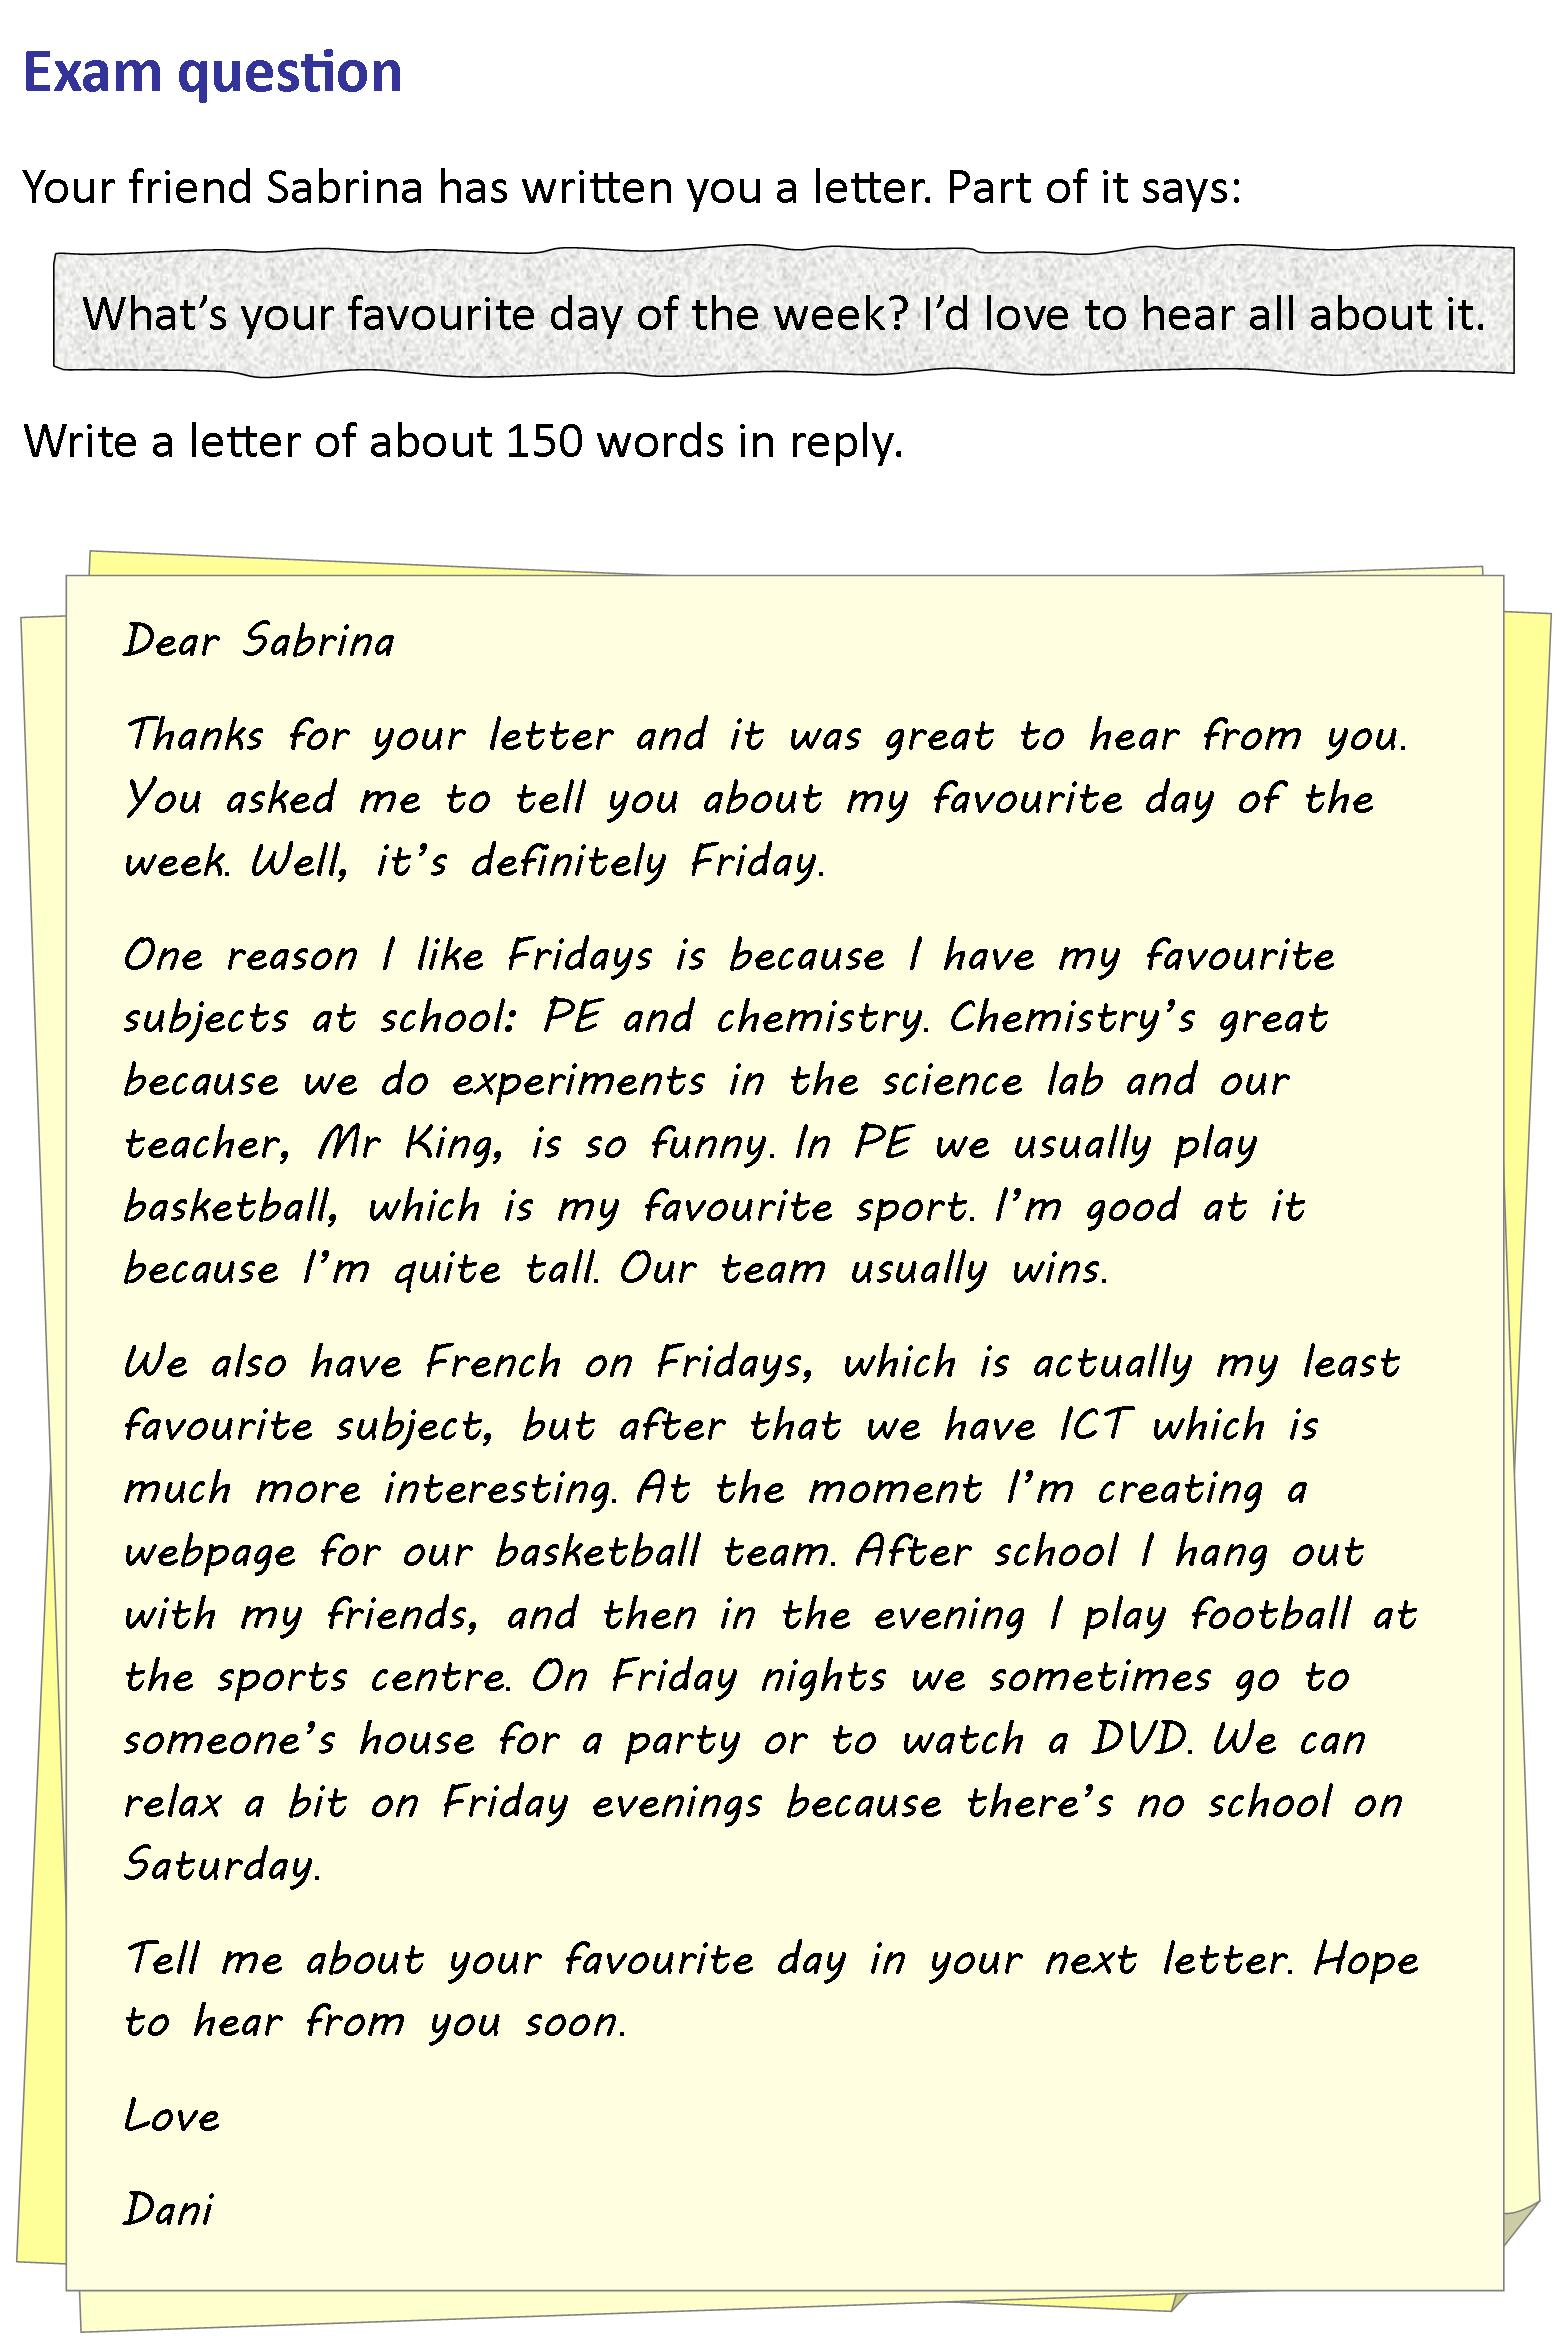 001 Essay Example Letter To A Friend Writing On Examination Rare Day Full